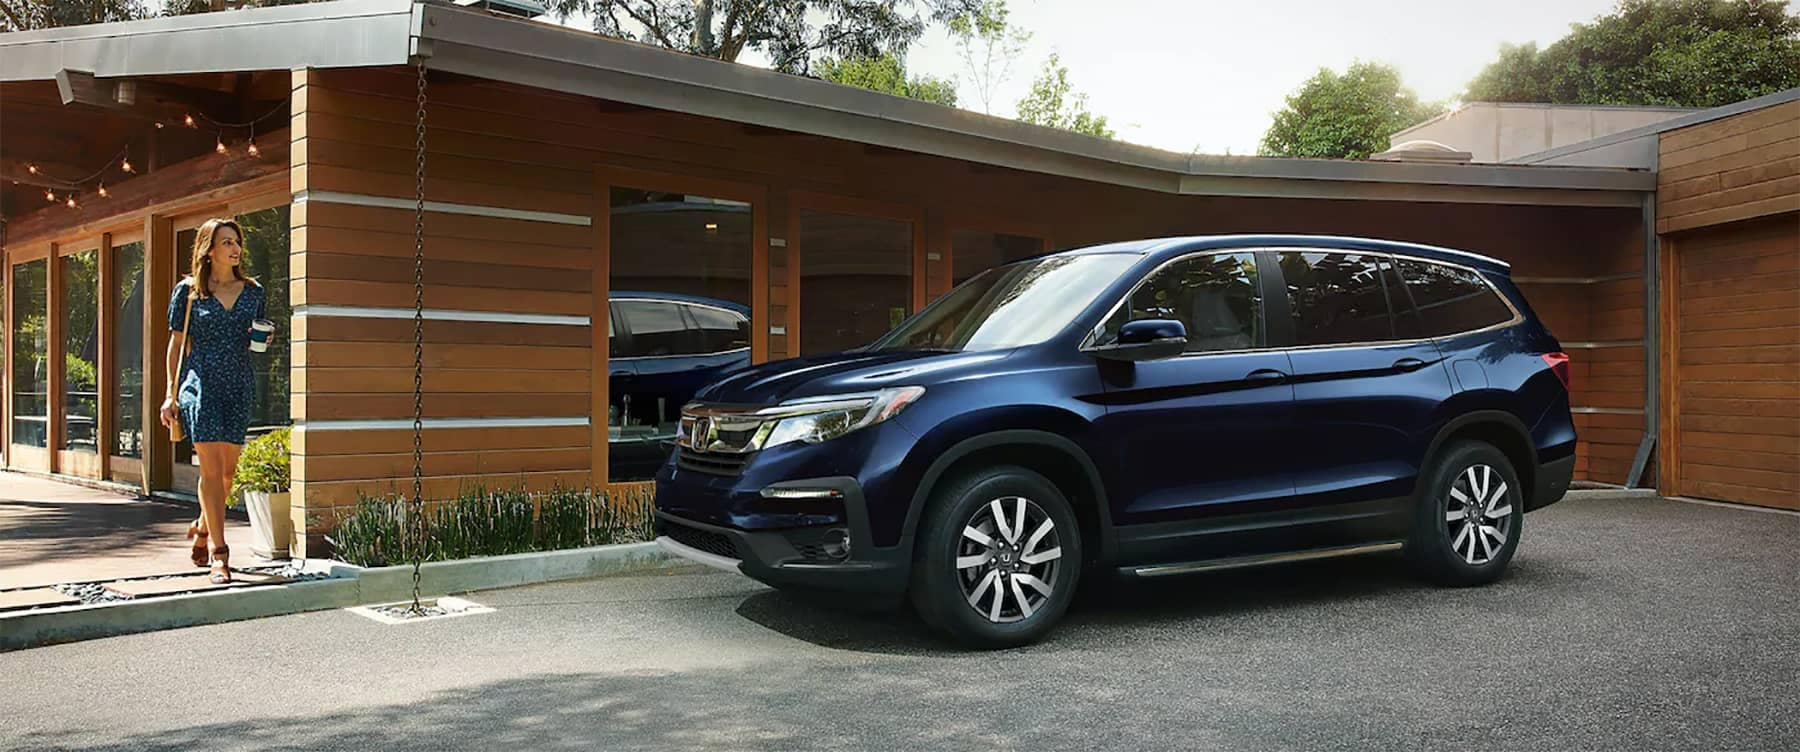 2019 Honda Pilot Parked Outside Home